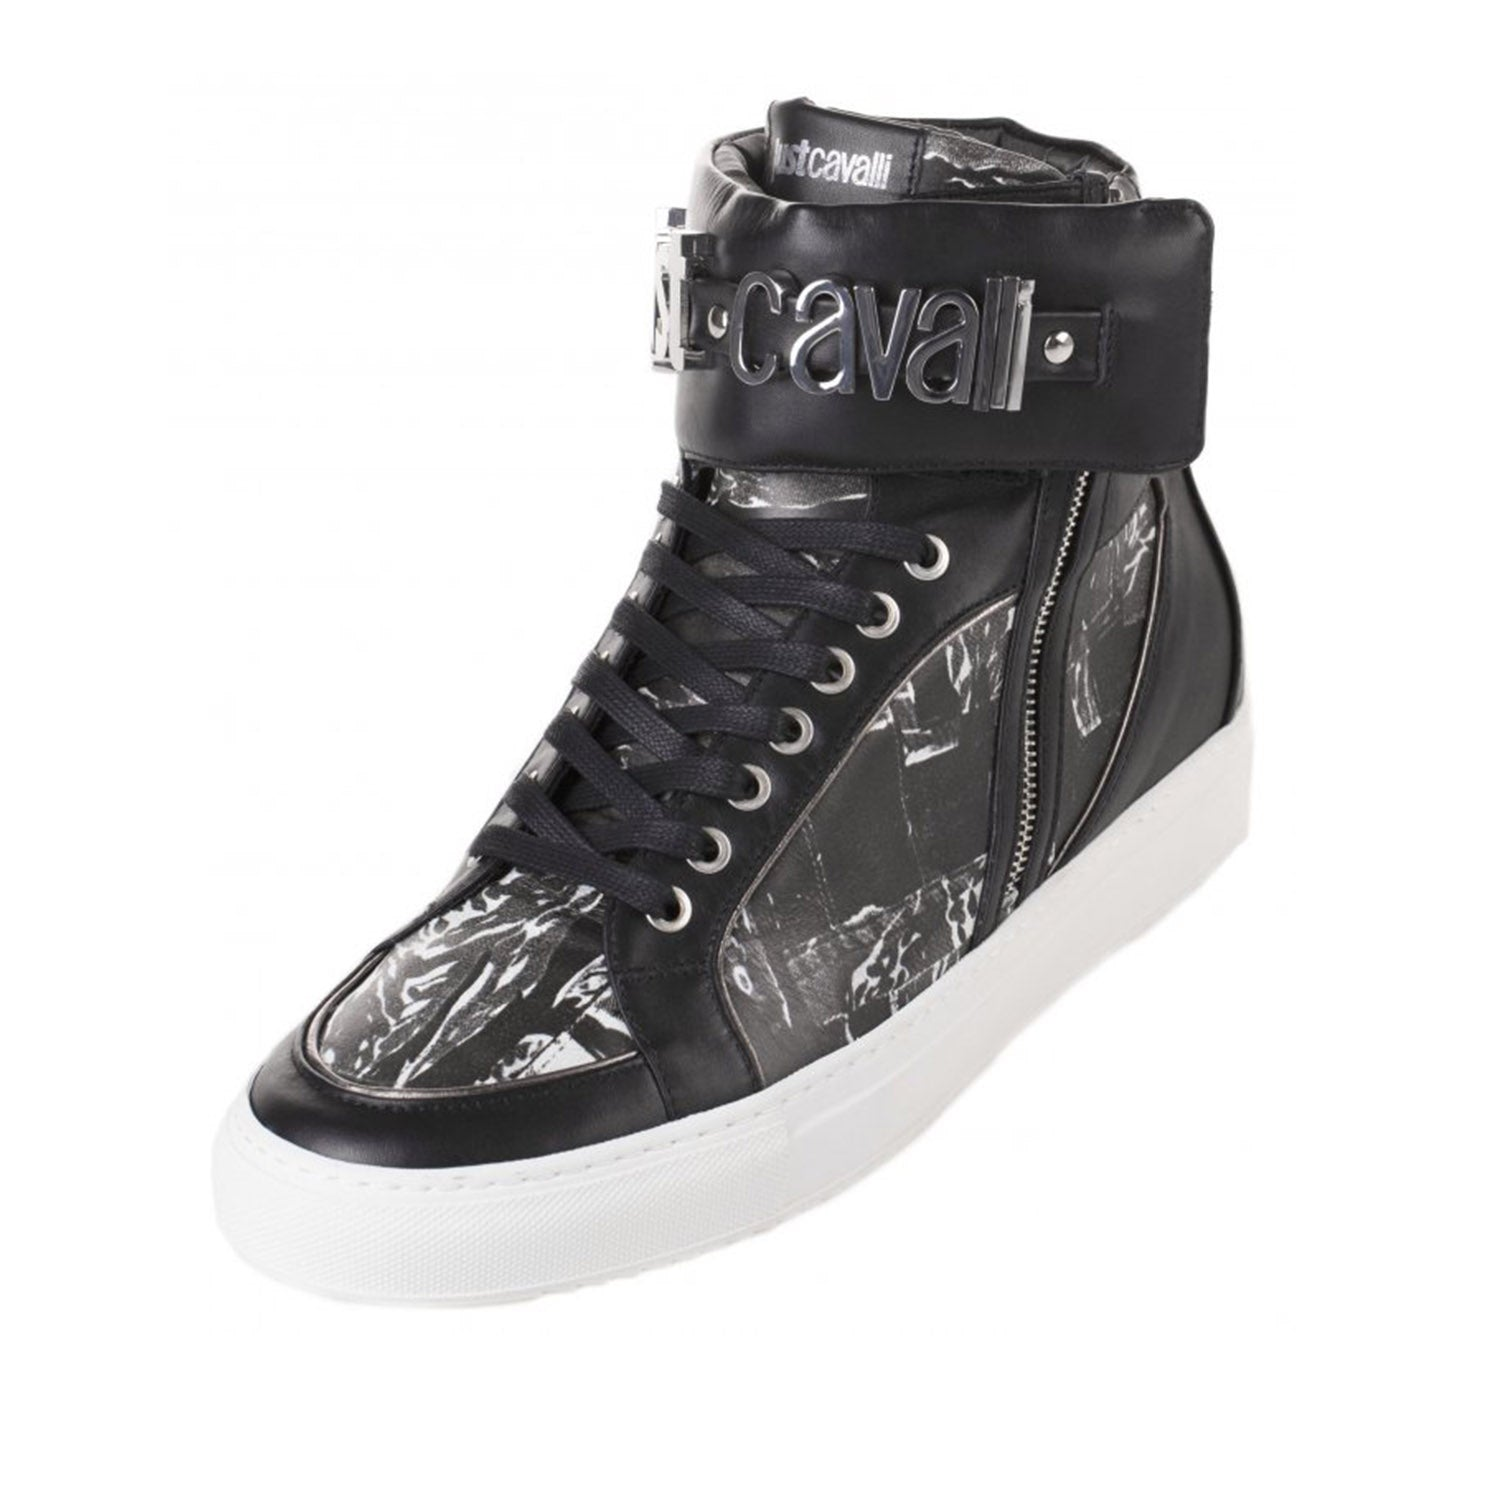 Just Cavalli Silver Metal Logo Detail High Top Trainer